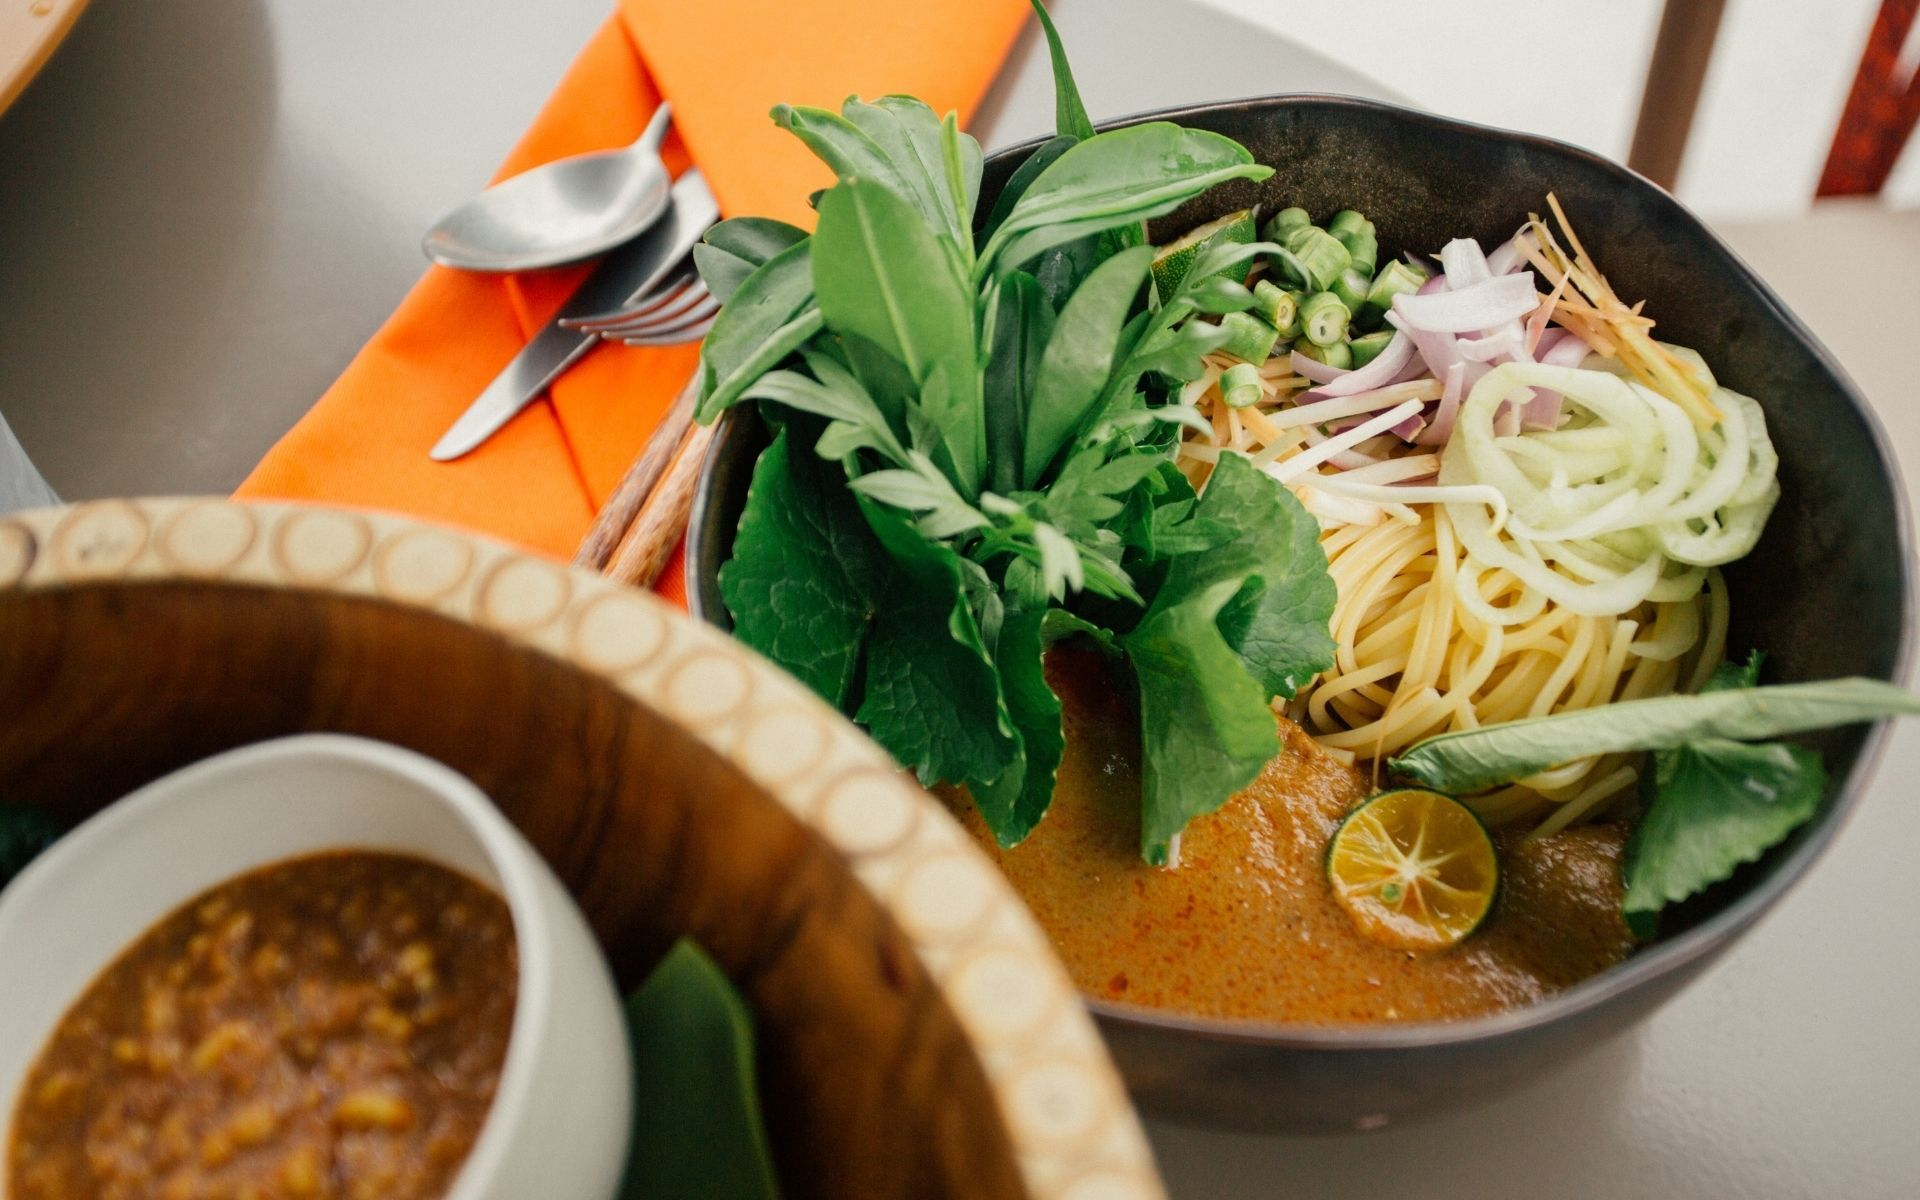 The garnishes for the laksa are from the chef's garden on-site